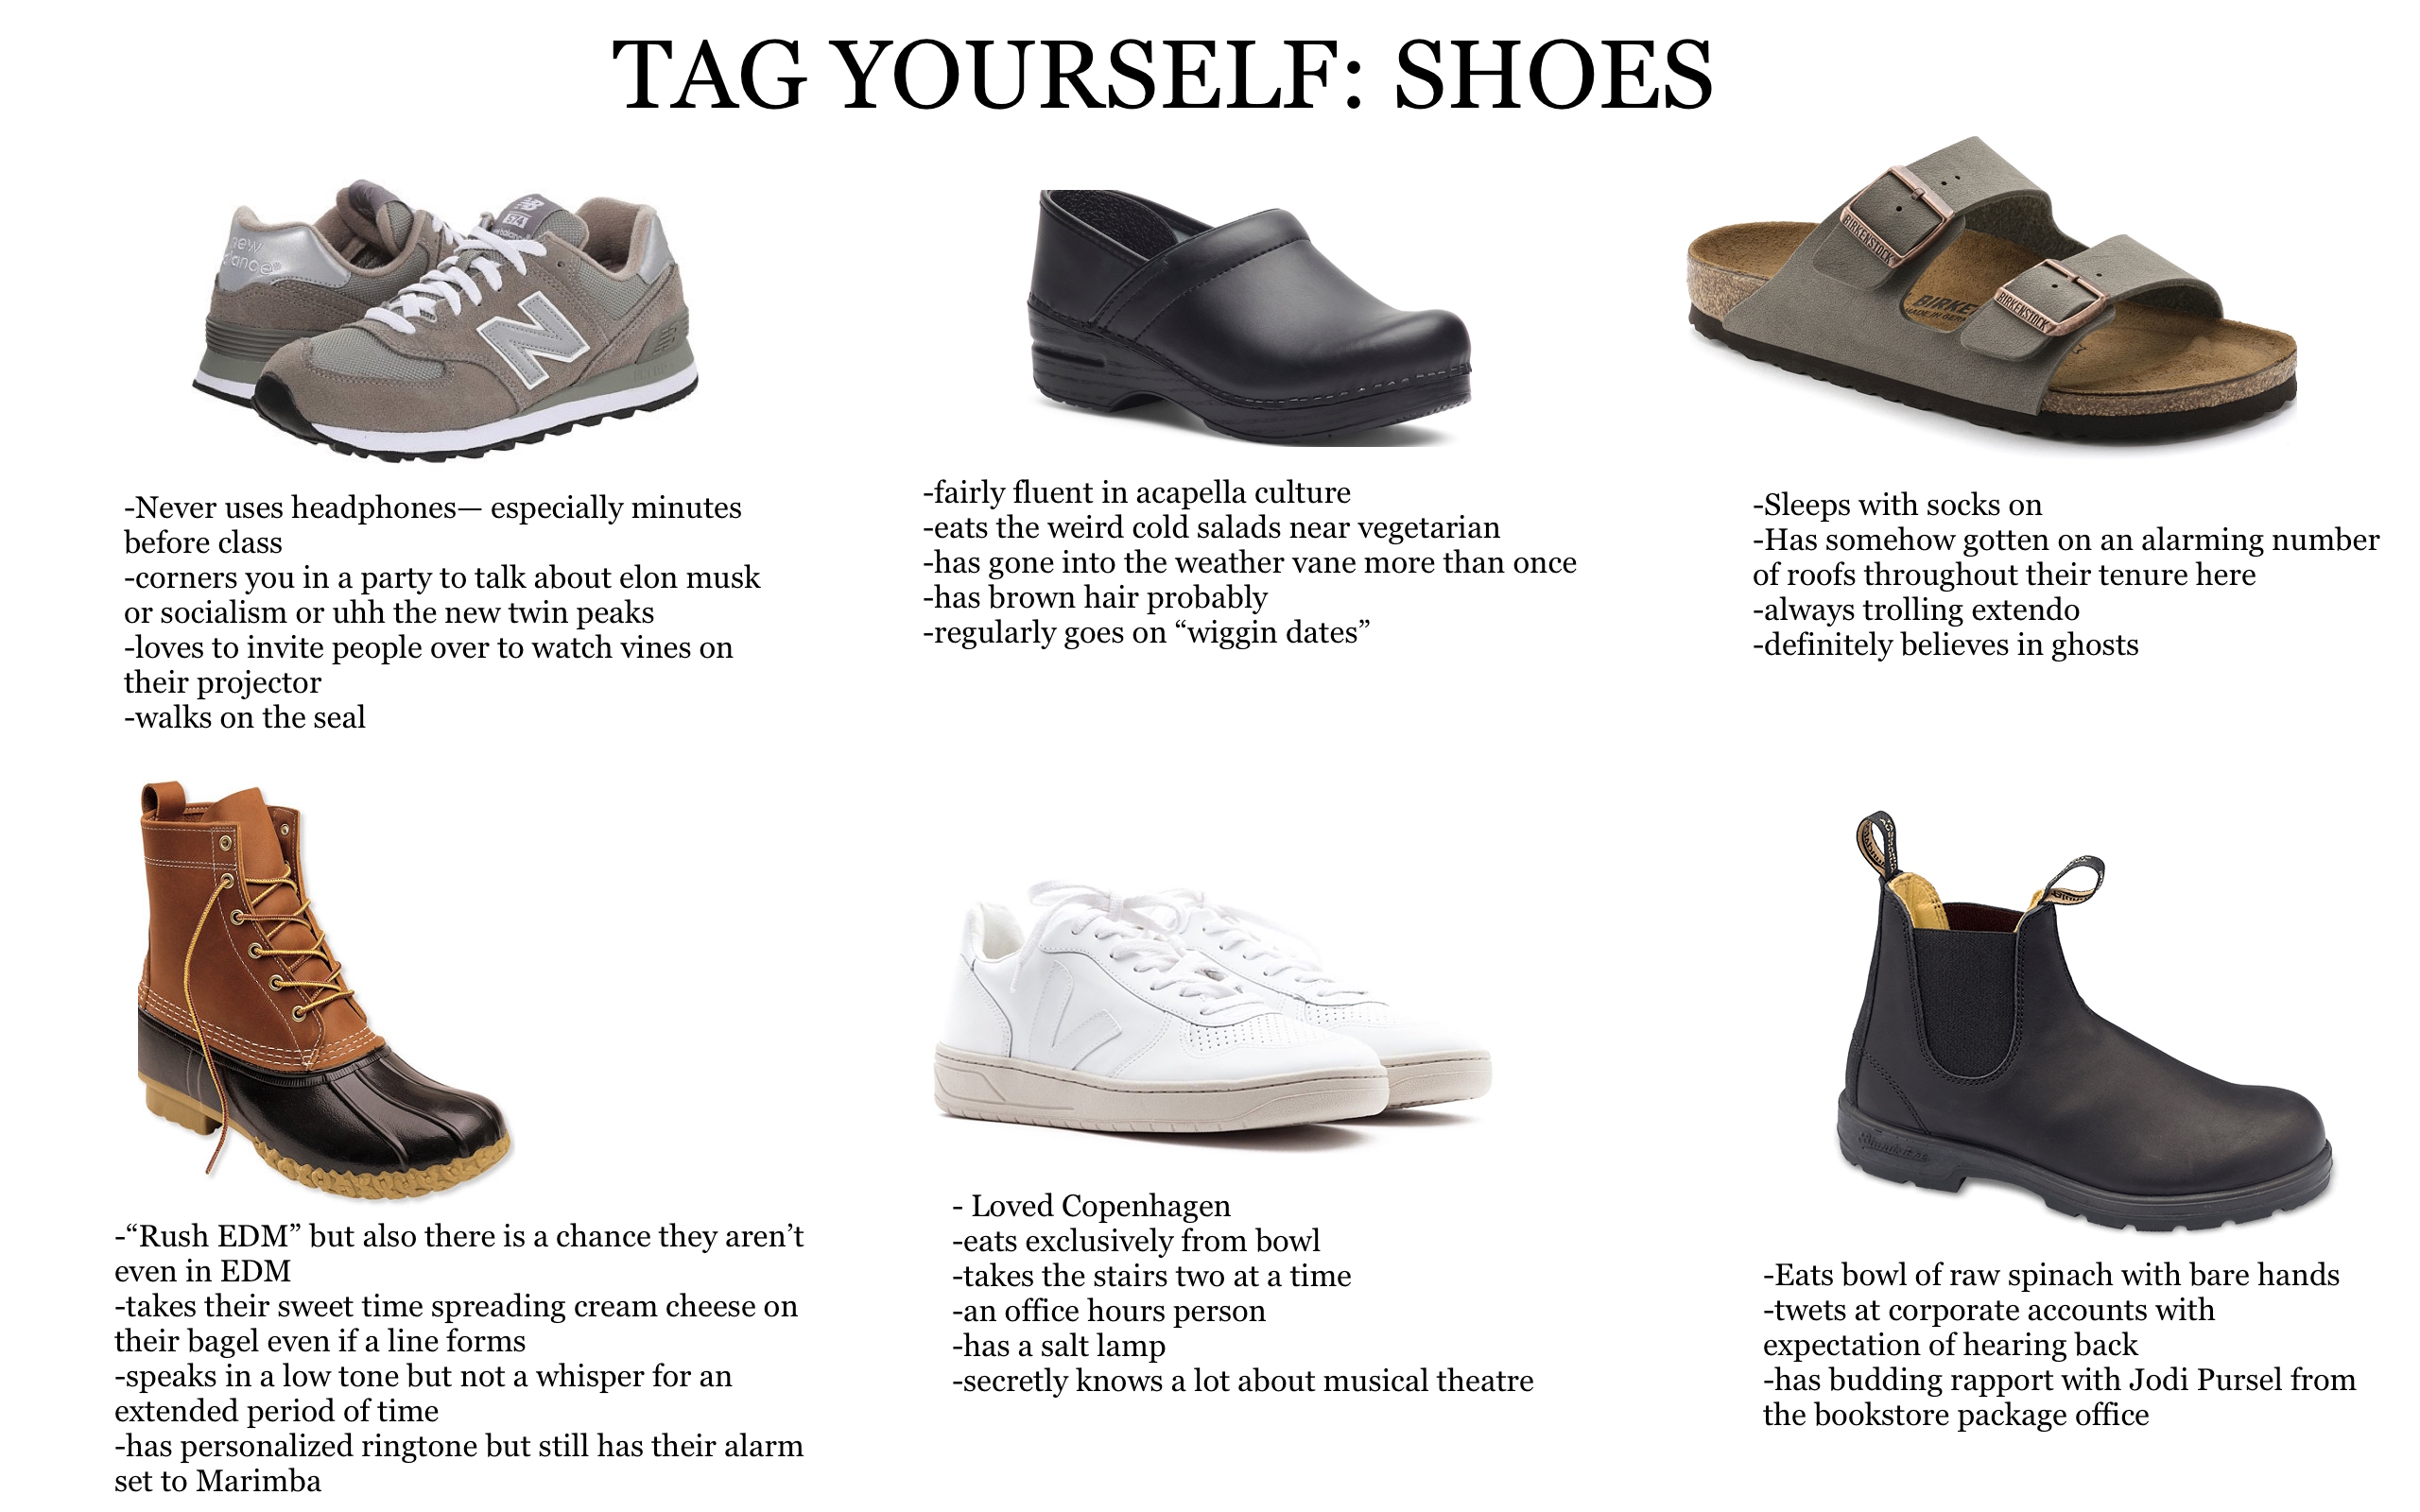 tag yourself shoes.jpg